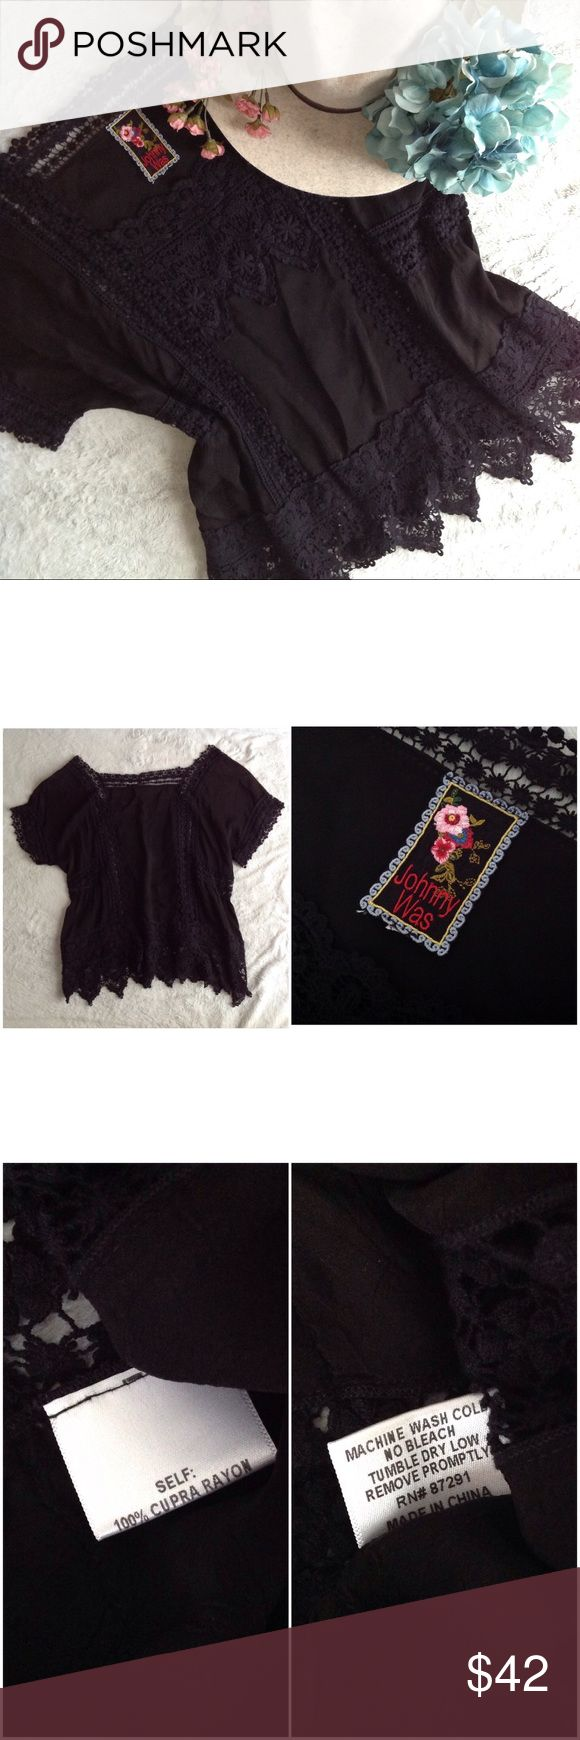 Johnny Was Black Embroidered Boho Flowy Hippie Top Great used condition. Beautiful tunic top by Johnny Was in solid black. 100% cupra rayon, with delicate embroidery along the neckline, sleeve cuffs, bottom hem and along the bodice, with a slightly sheer peek-a-book panel at the waist and scalloped edge at the bottom. Note: size tag has been removed but listed as a medium based on measurements. Please look at measurement photos and ask any questions about sizing! A couple faint spots on back…